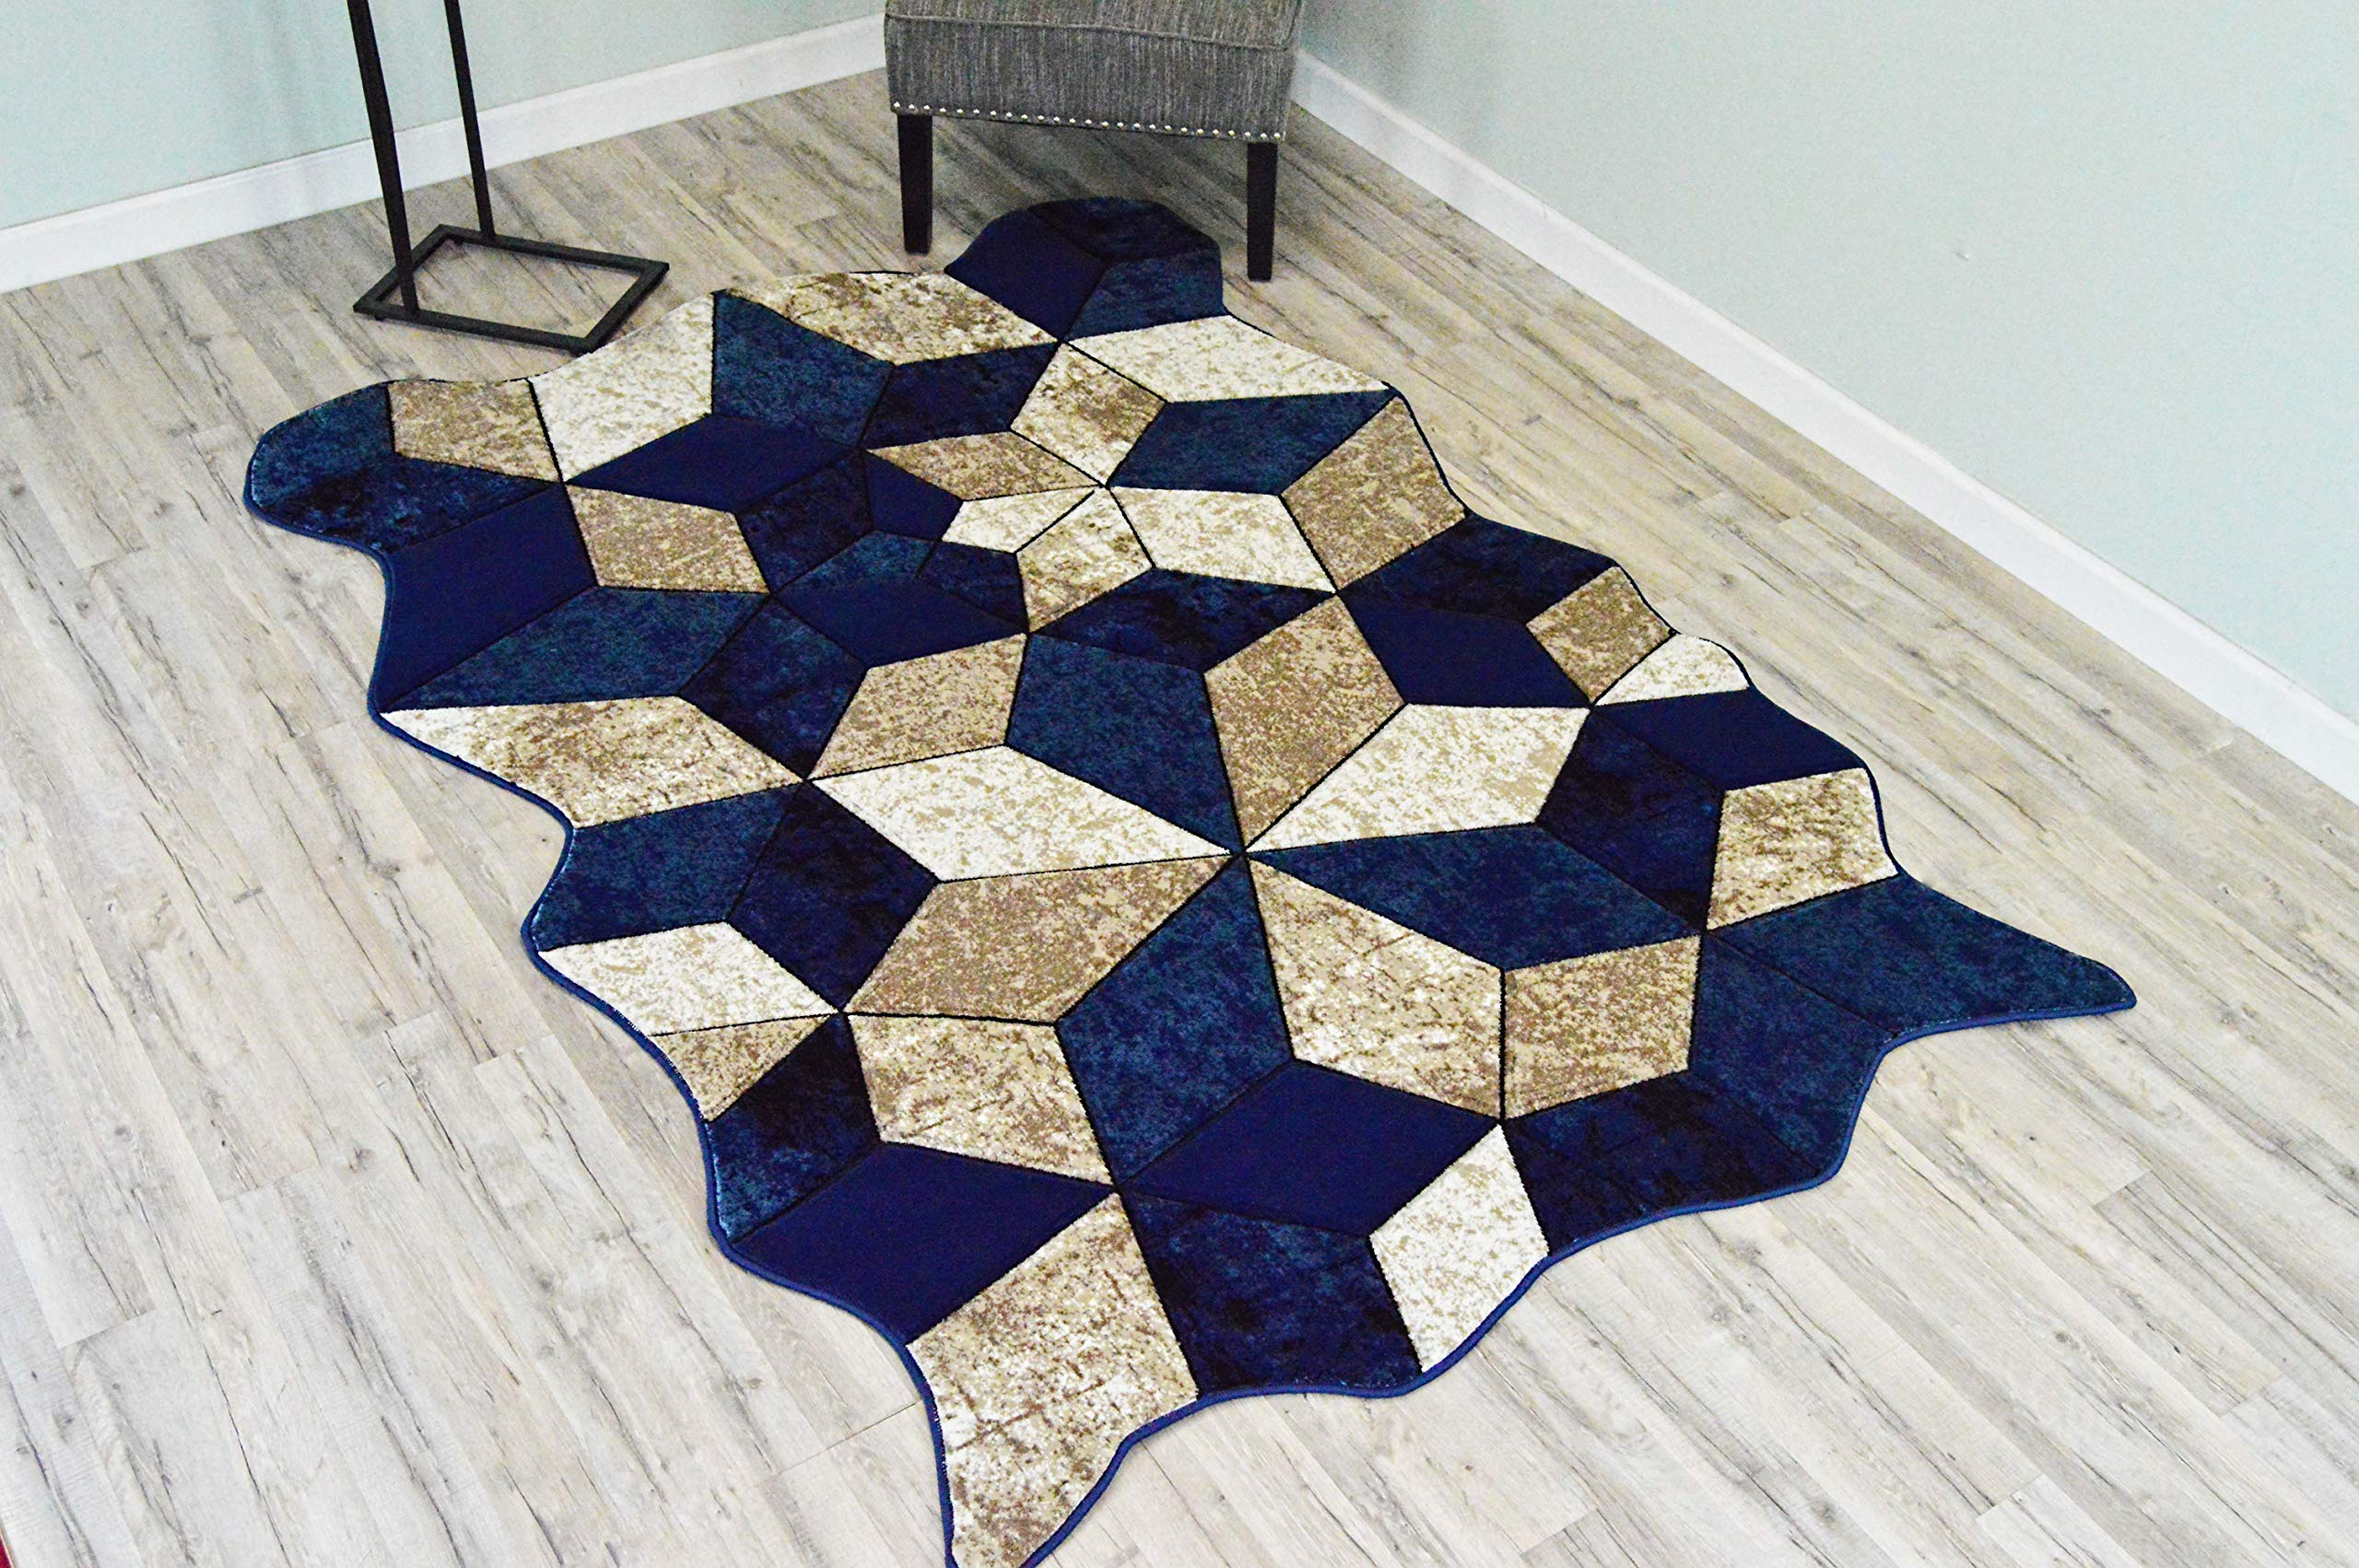 PlanetRugs Inc Twist Free Shape 3D Hand Carved Modern Abstract Contemporary 5x8 Colorful Luxury Rug for Bedroom, Living Room, Dining Room 4708 Navy Blue by PlanetRugs Inc